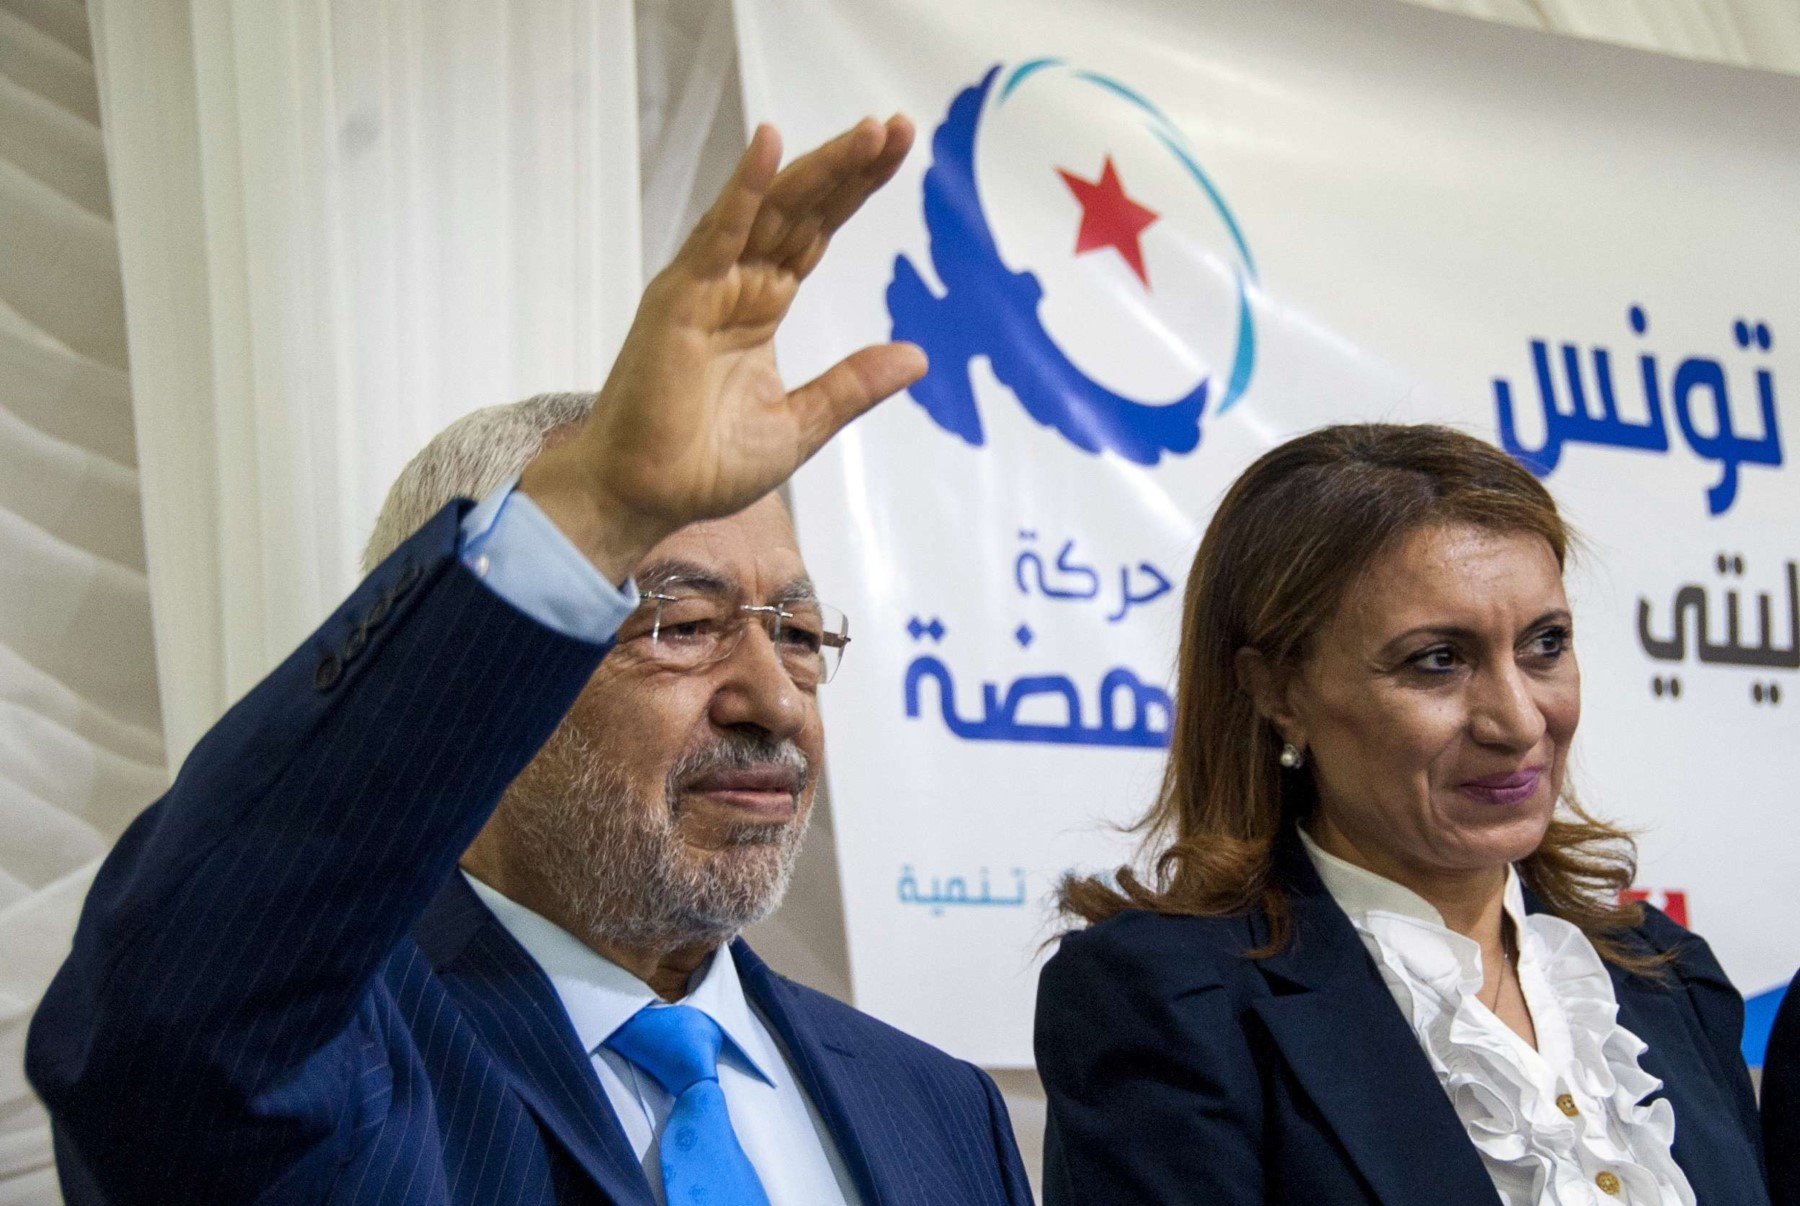 Souad Abderrahim, 54, right, campaigns with Rached Ghannouchi, head of Islamist party Ennahdha, in Tunis, on April 14. (AP)